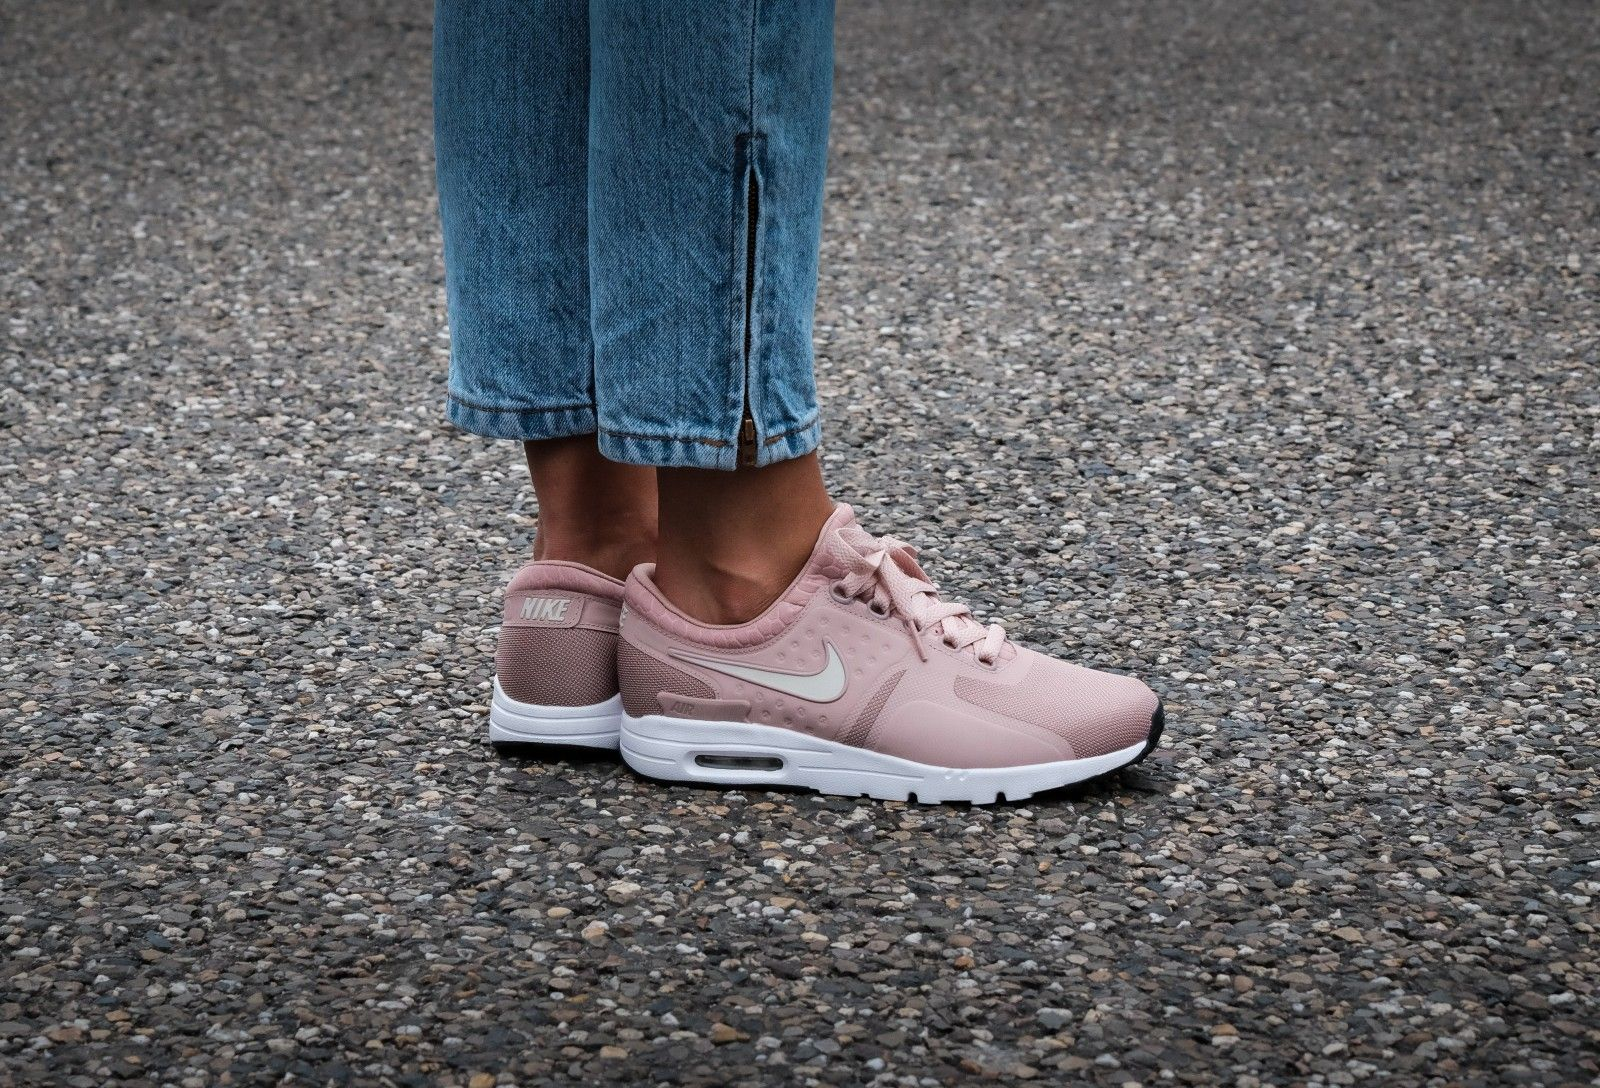 Nike Air Max Zero Cute Sneakers